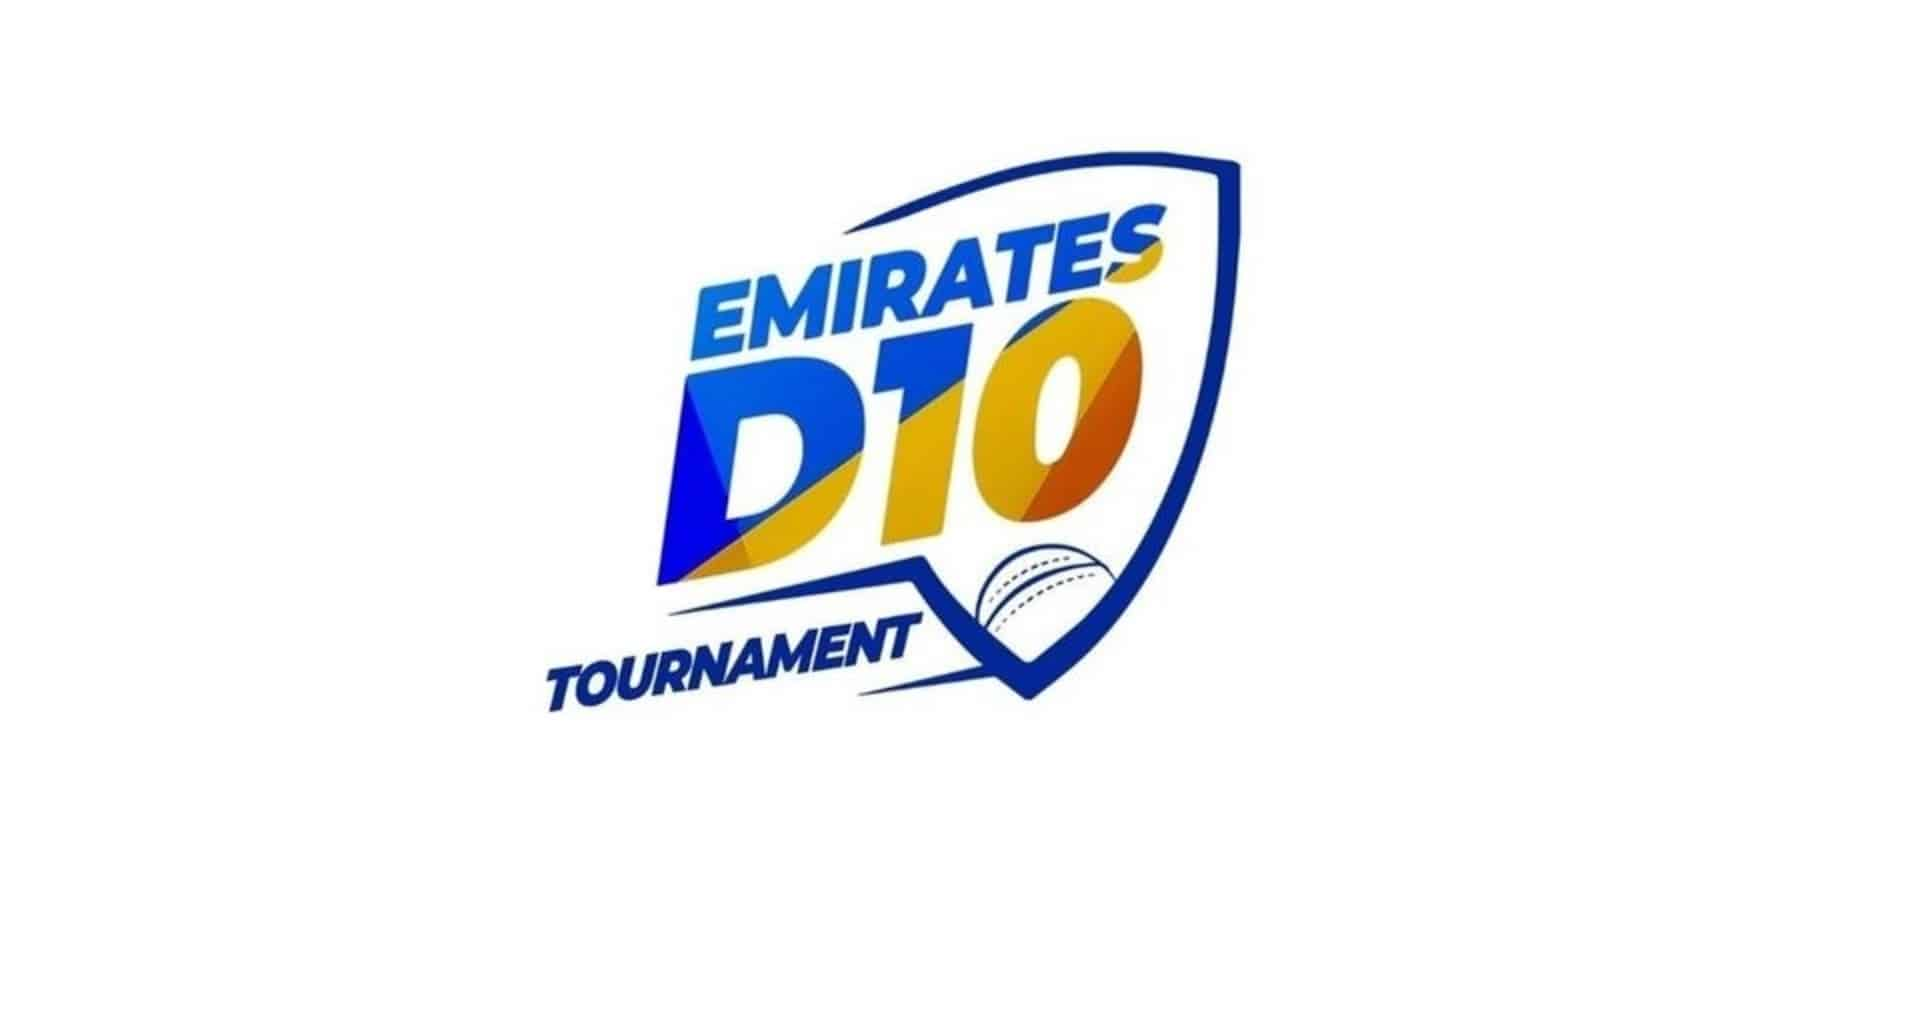 Emirates D10 League 2020: Live Streaming, Schedule, Squads, Date and Timings